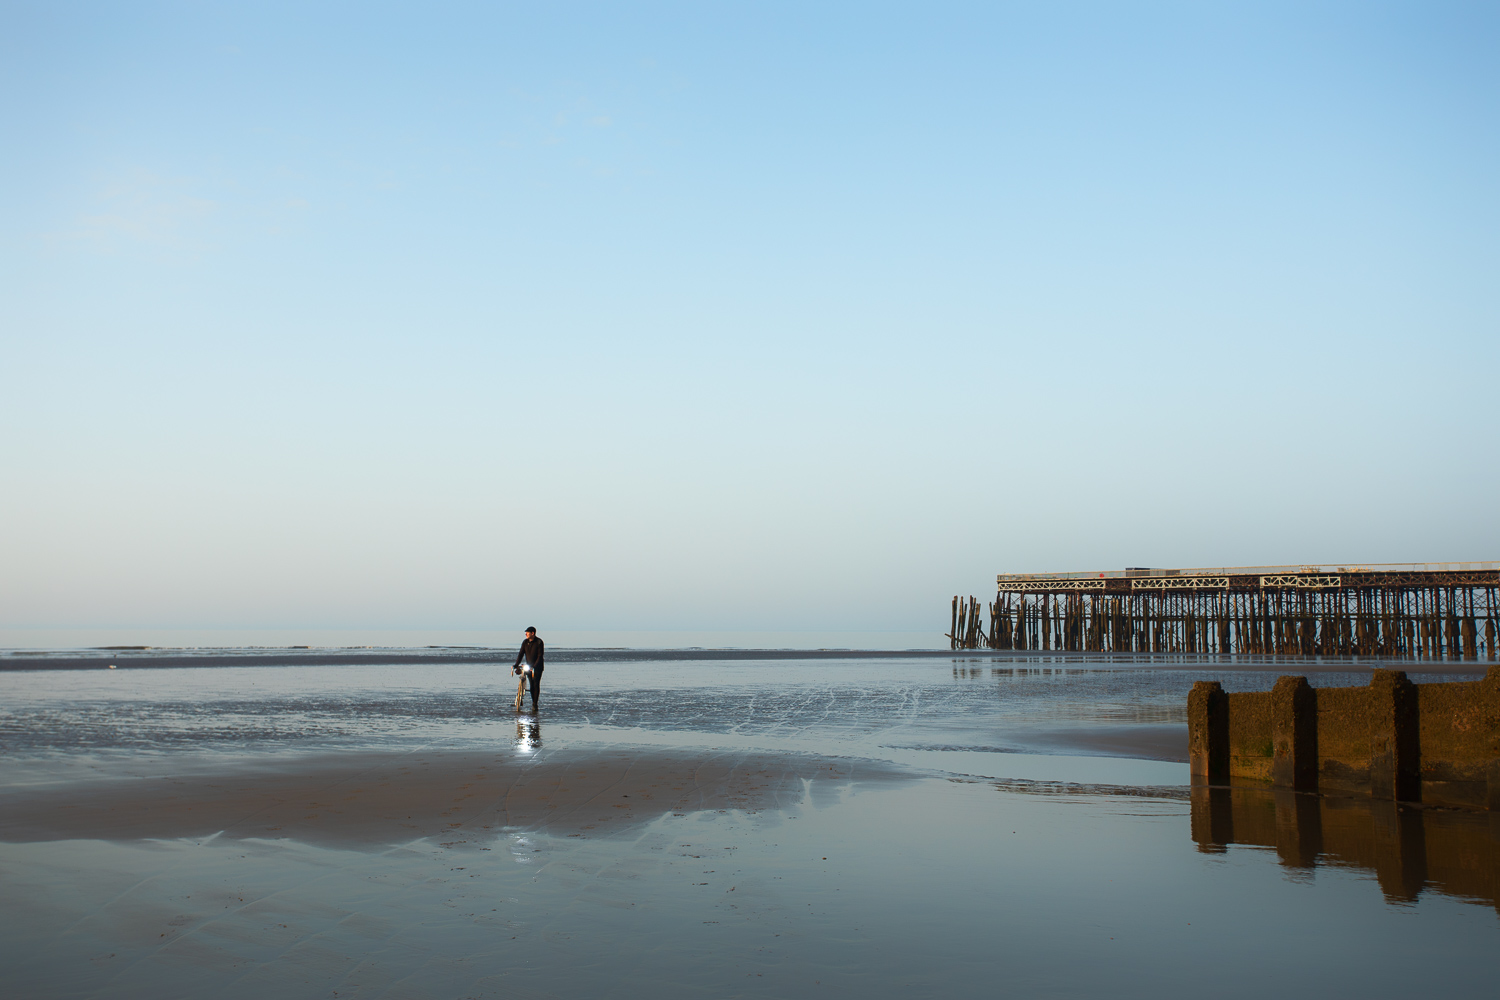 Man walking bicycle across low tide sands at dawn old pier in background